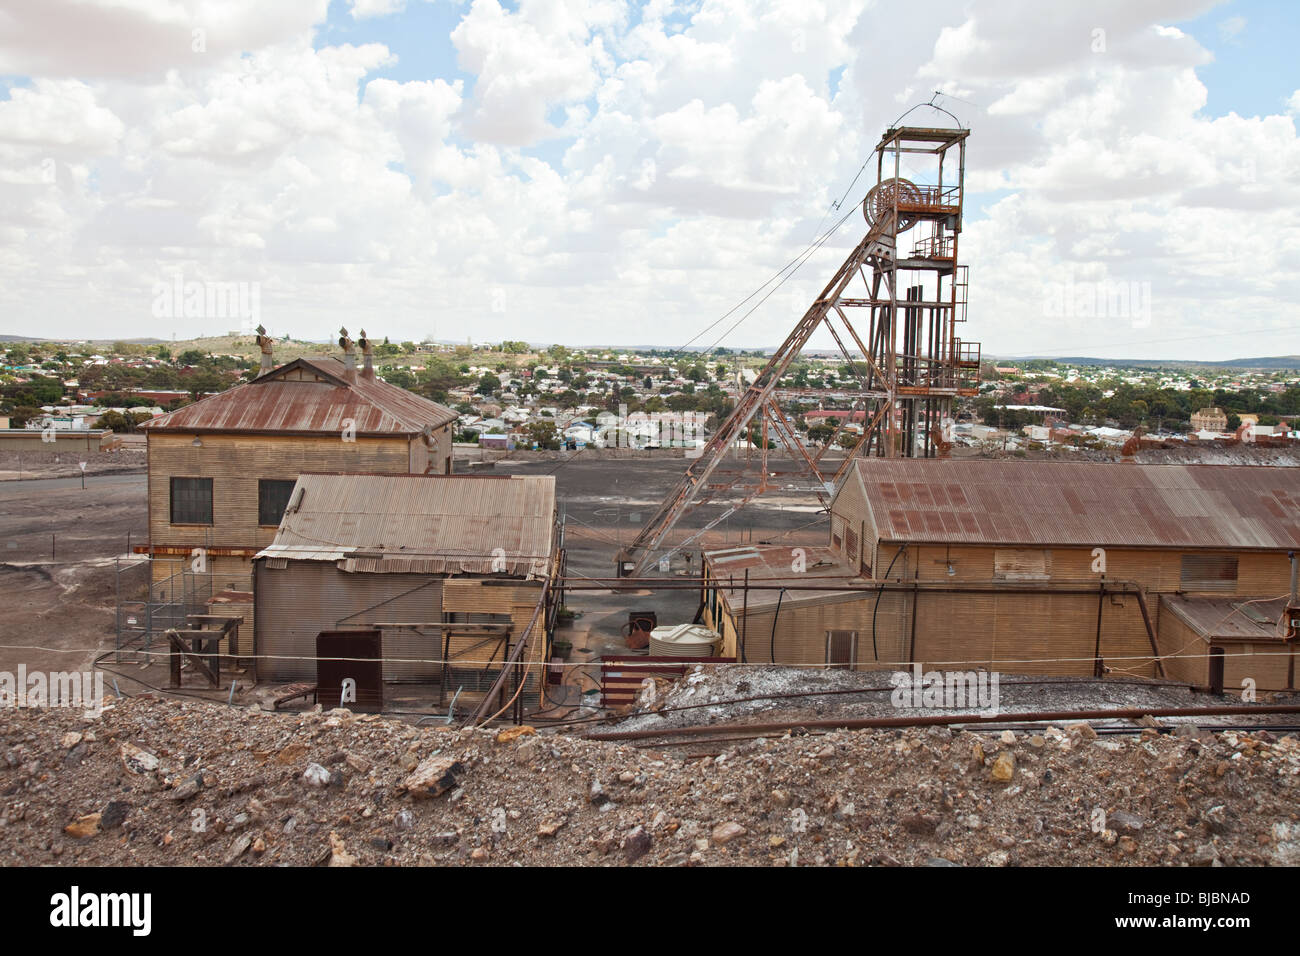 Outback Huntsville Al >> Old mine shaft in Broken Hill, NSW, Australian aoutback Stock Photo: 28532405 - Alamy